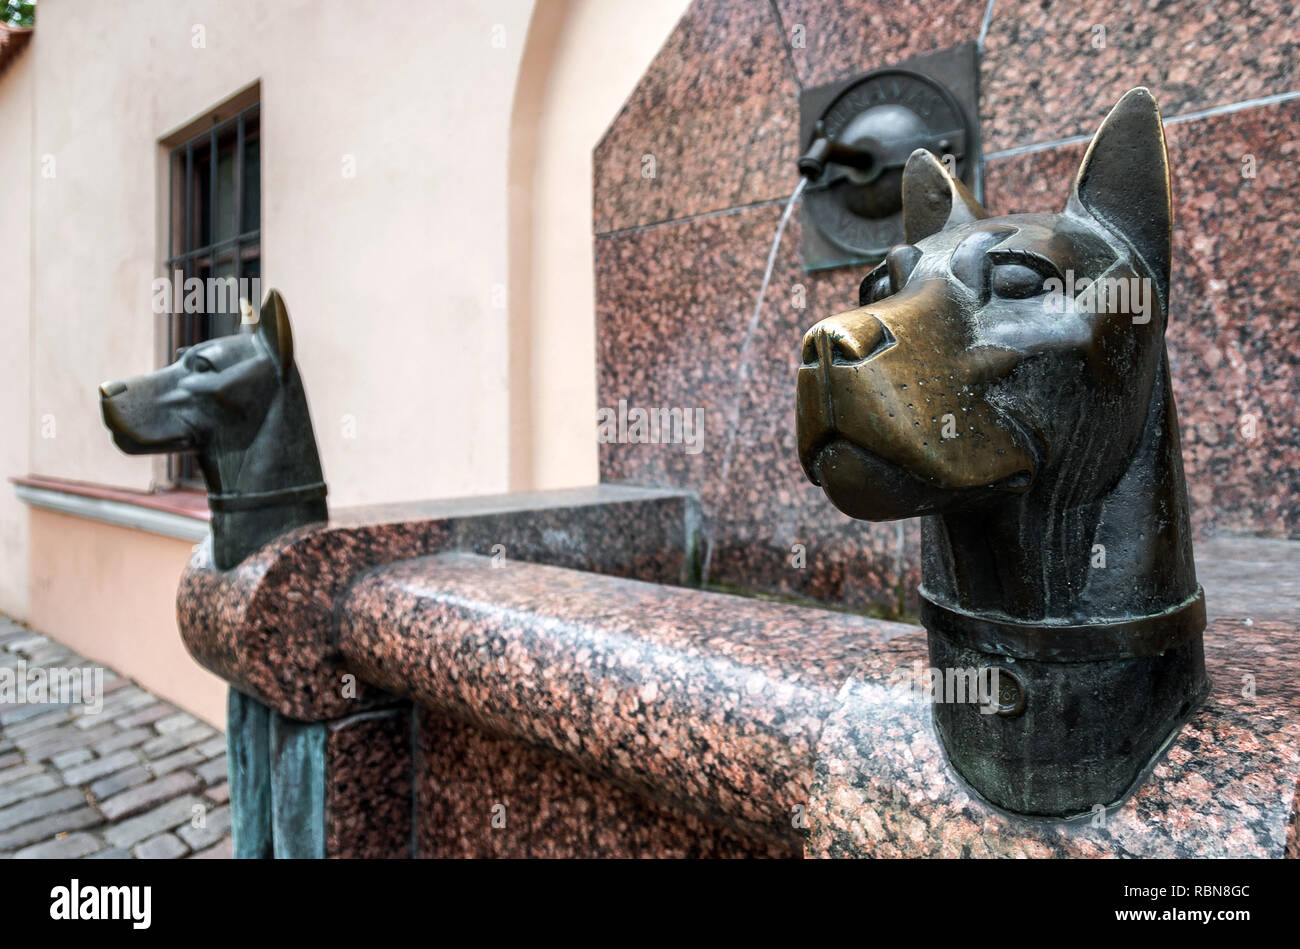 Fountain in Kaunas old town, Lithuania - Stock Image